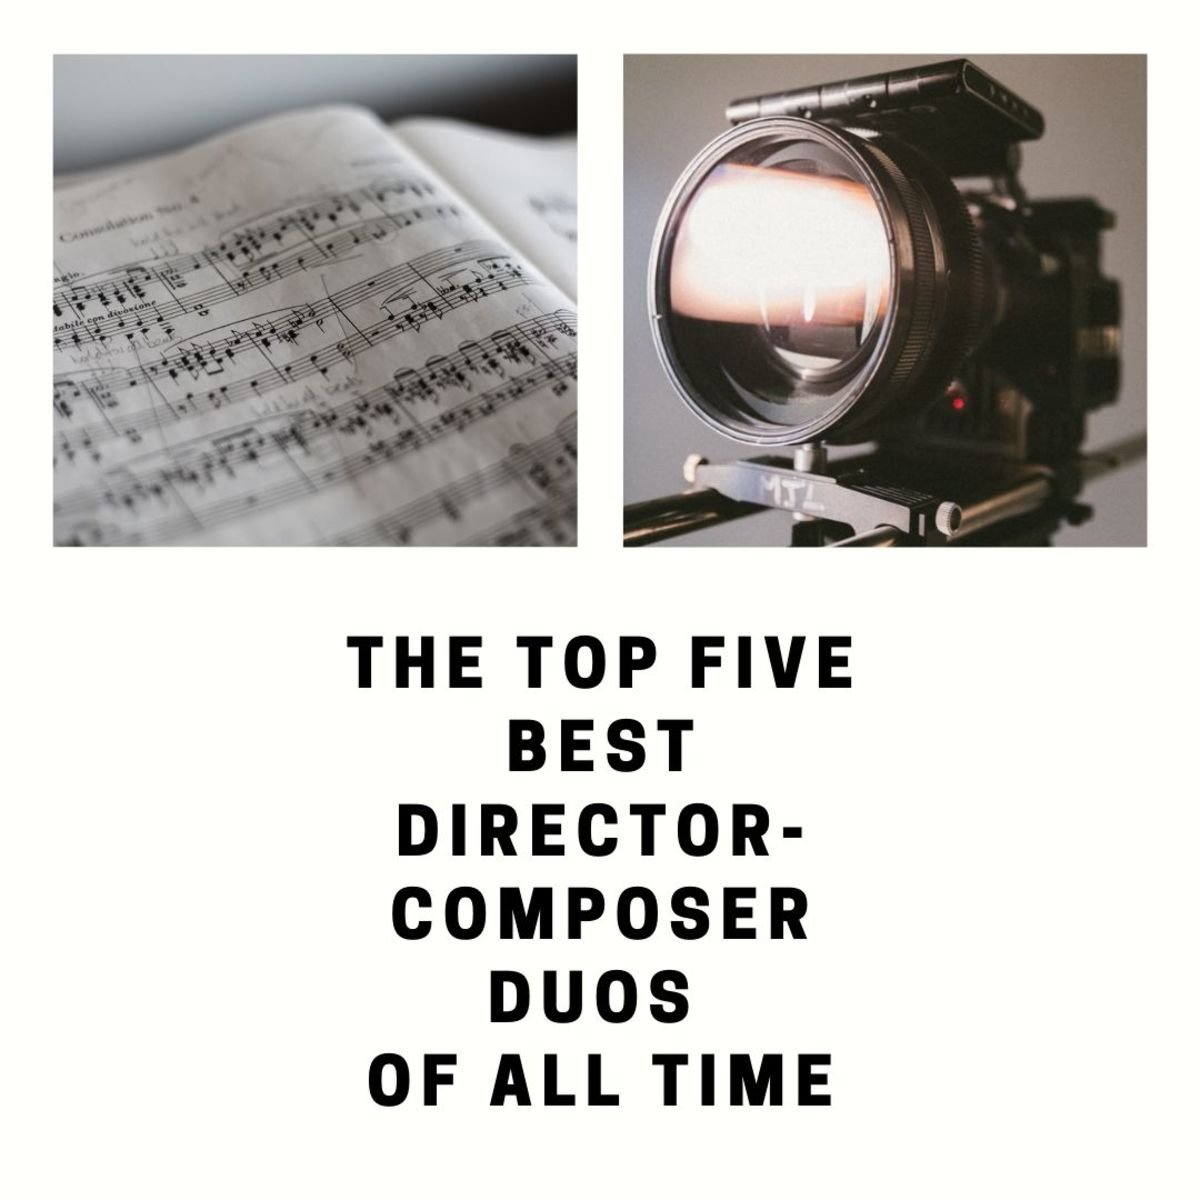 Top Five Most Iconic Director-Composer Duos